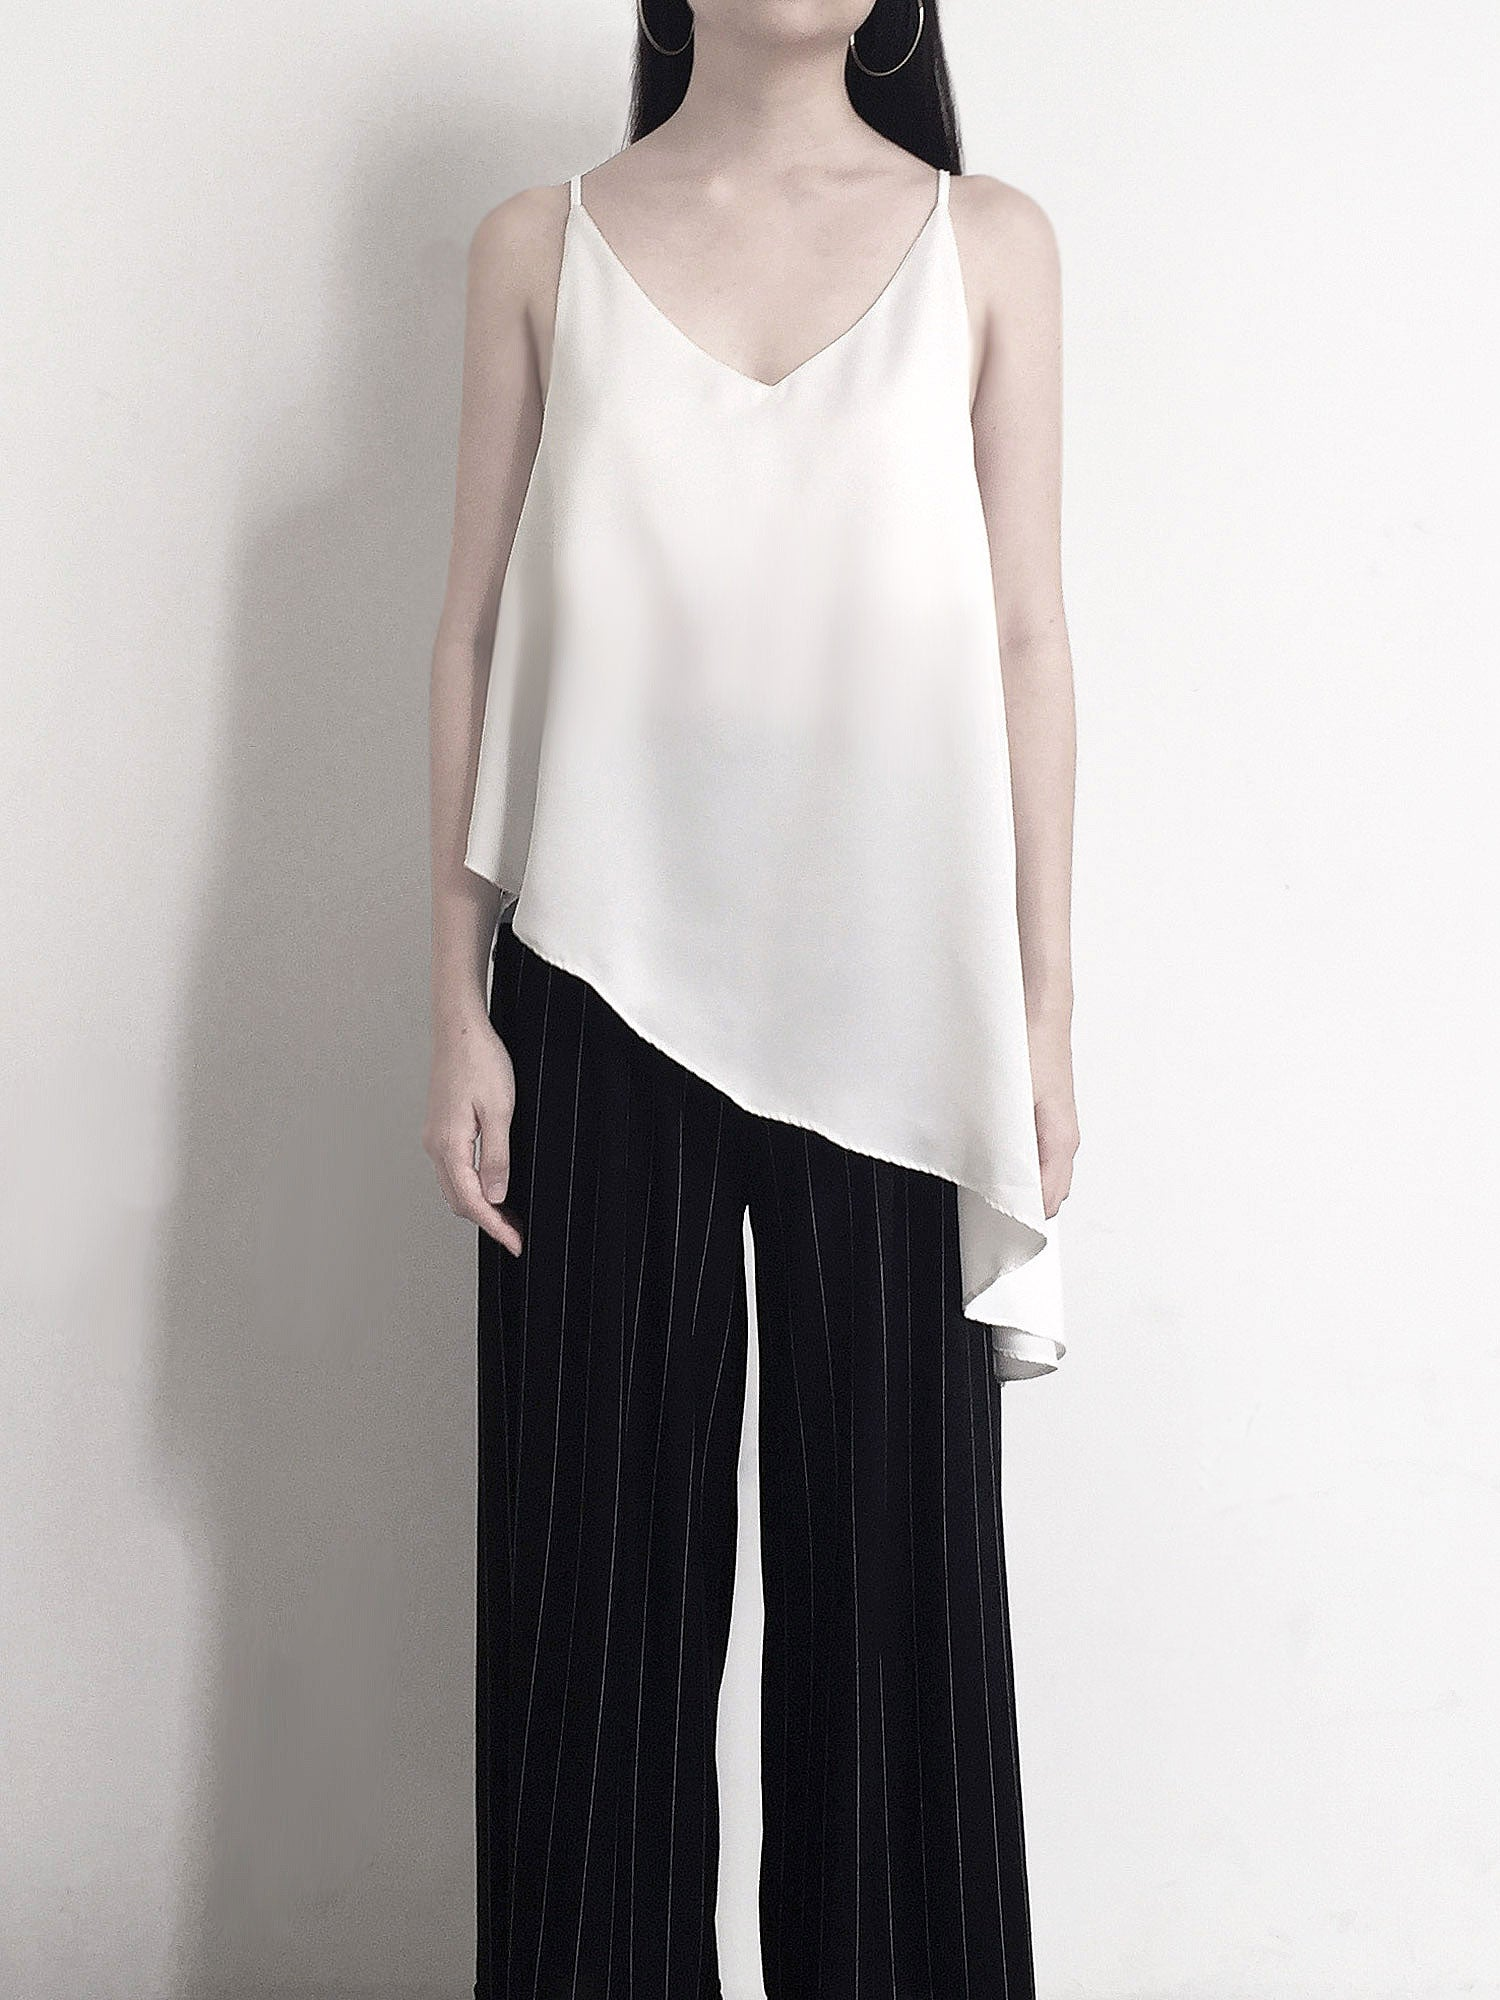 Frida Top - White/Black - Gabi The Label